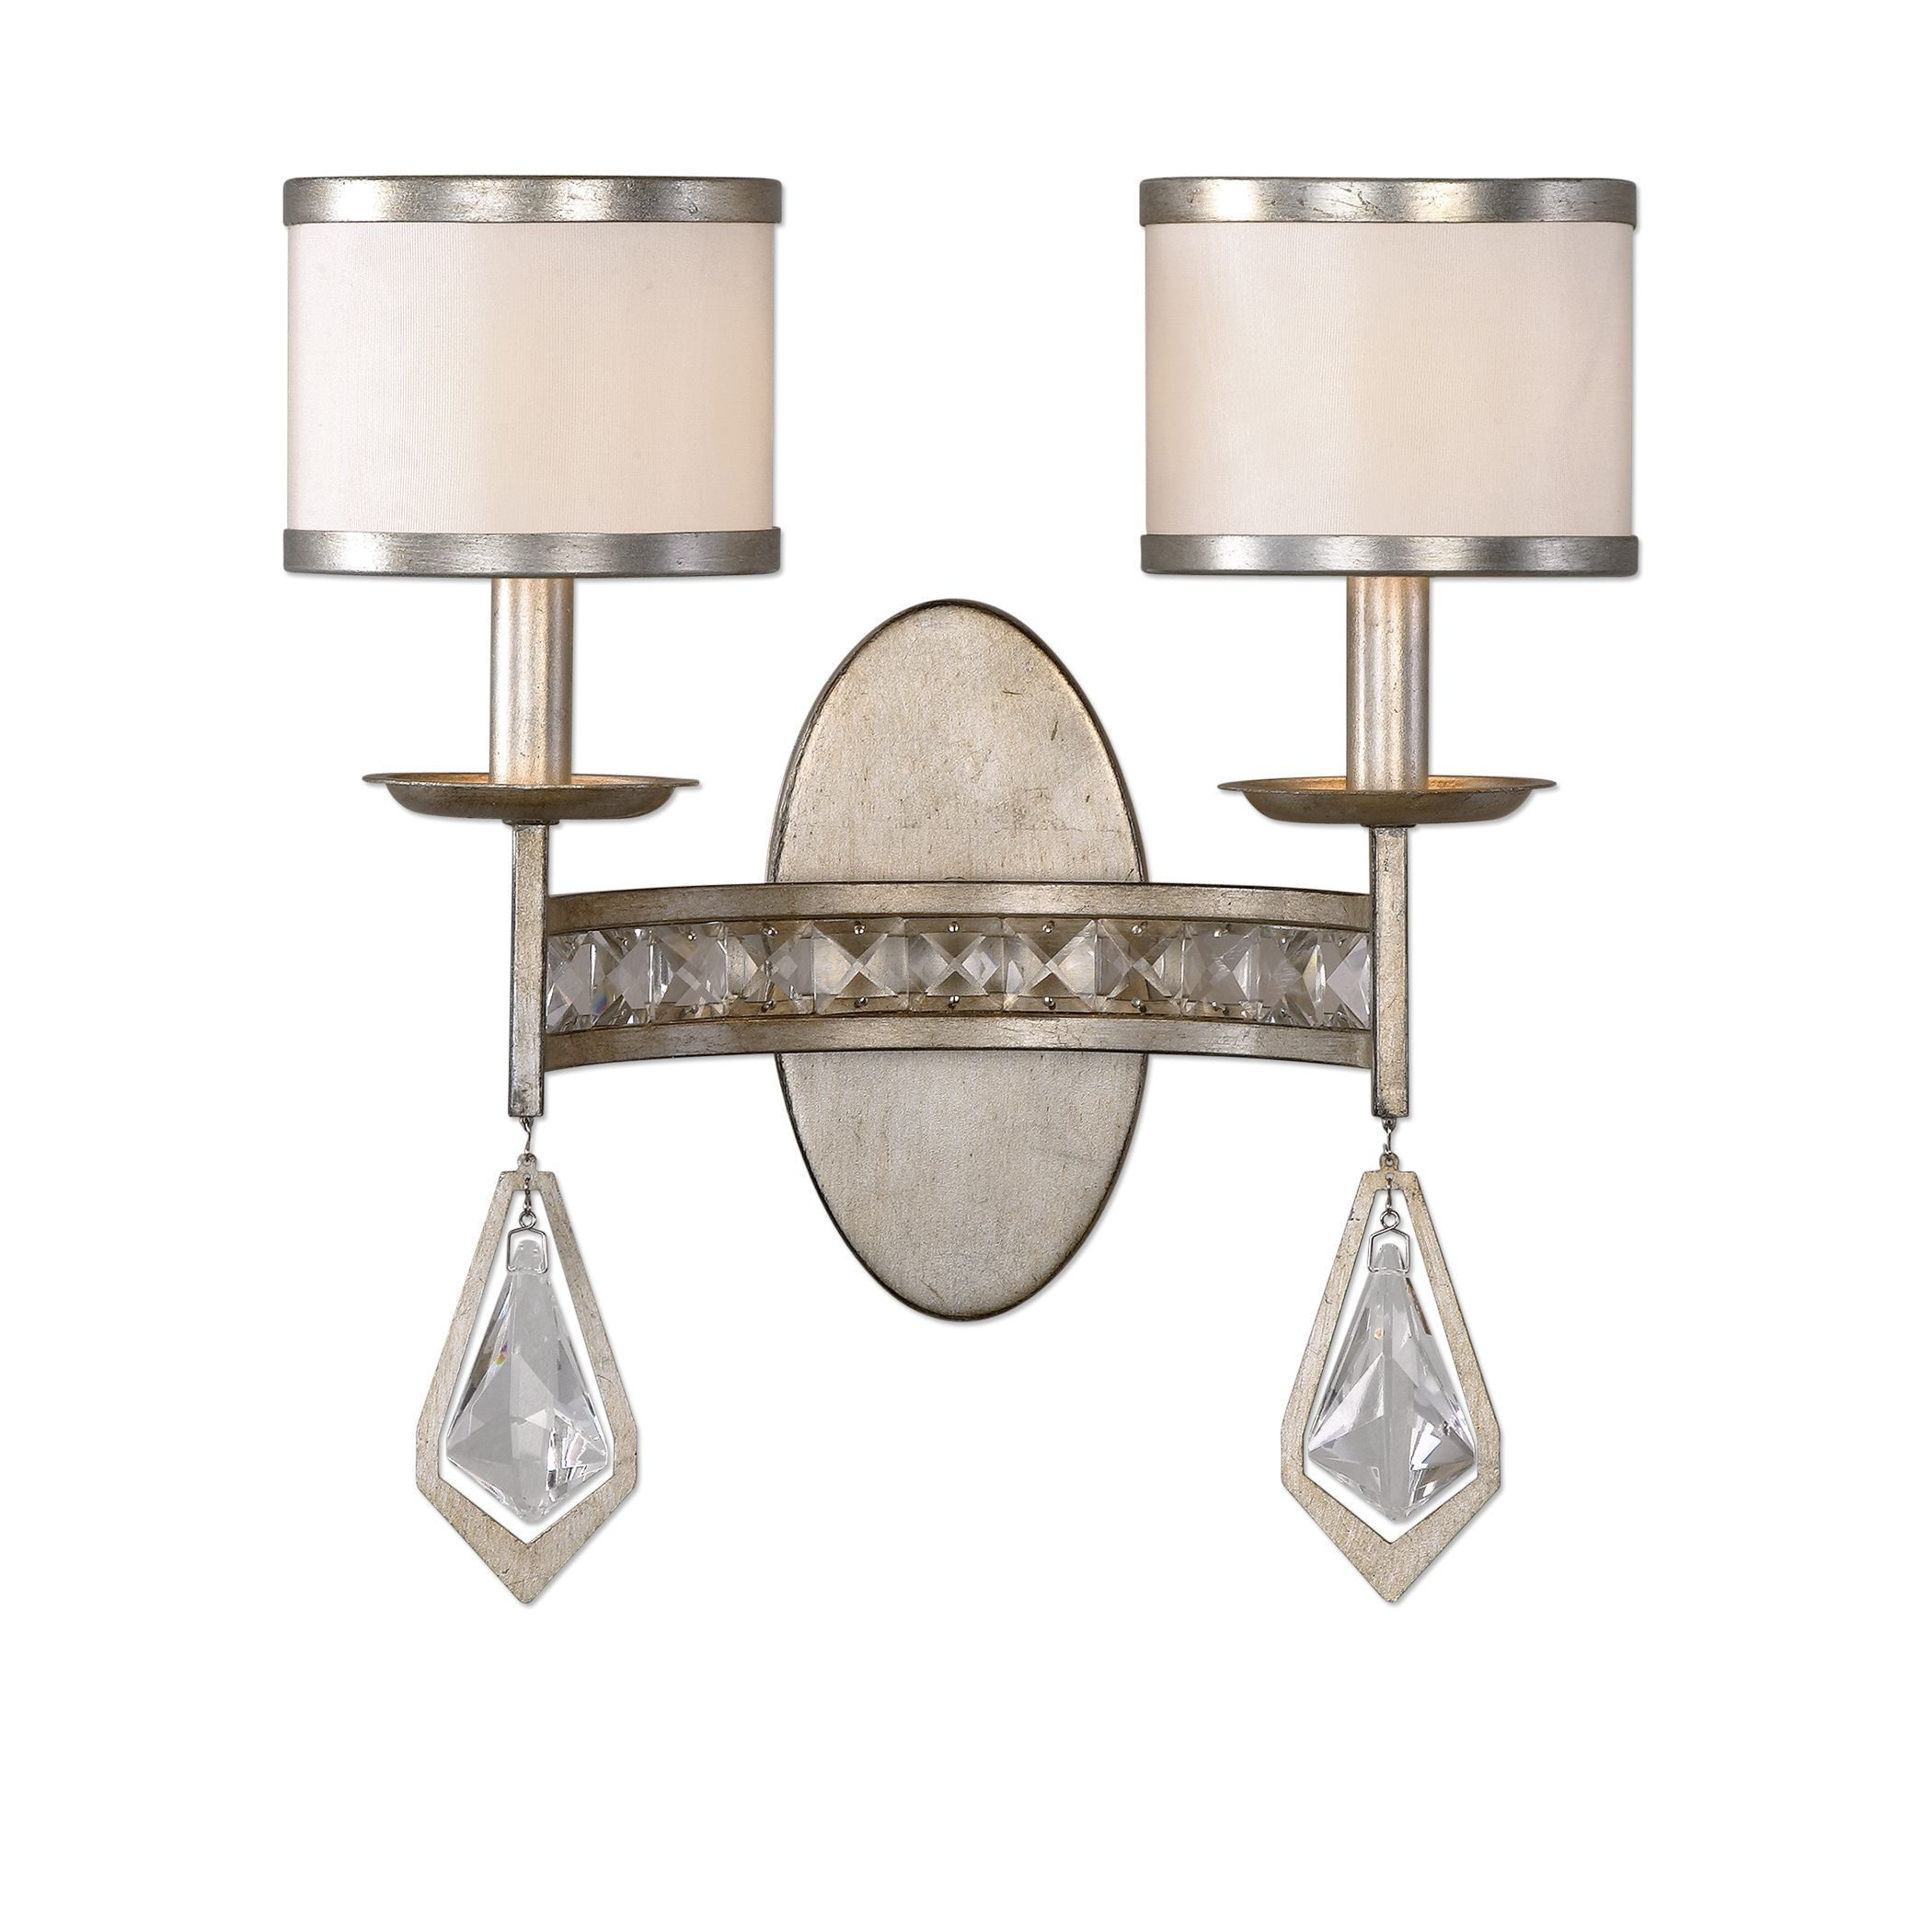 decor sconce fantastic modern art collections the decorations wall pattern of uttermost with dorable mirror awesome metal sconces candle image